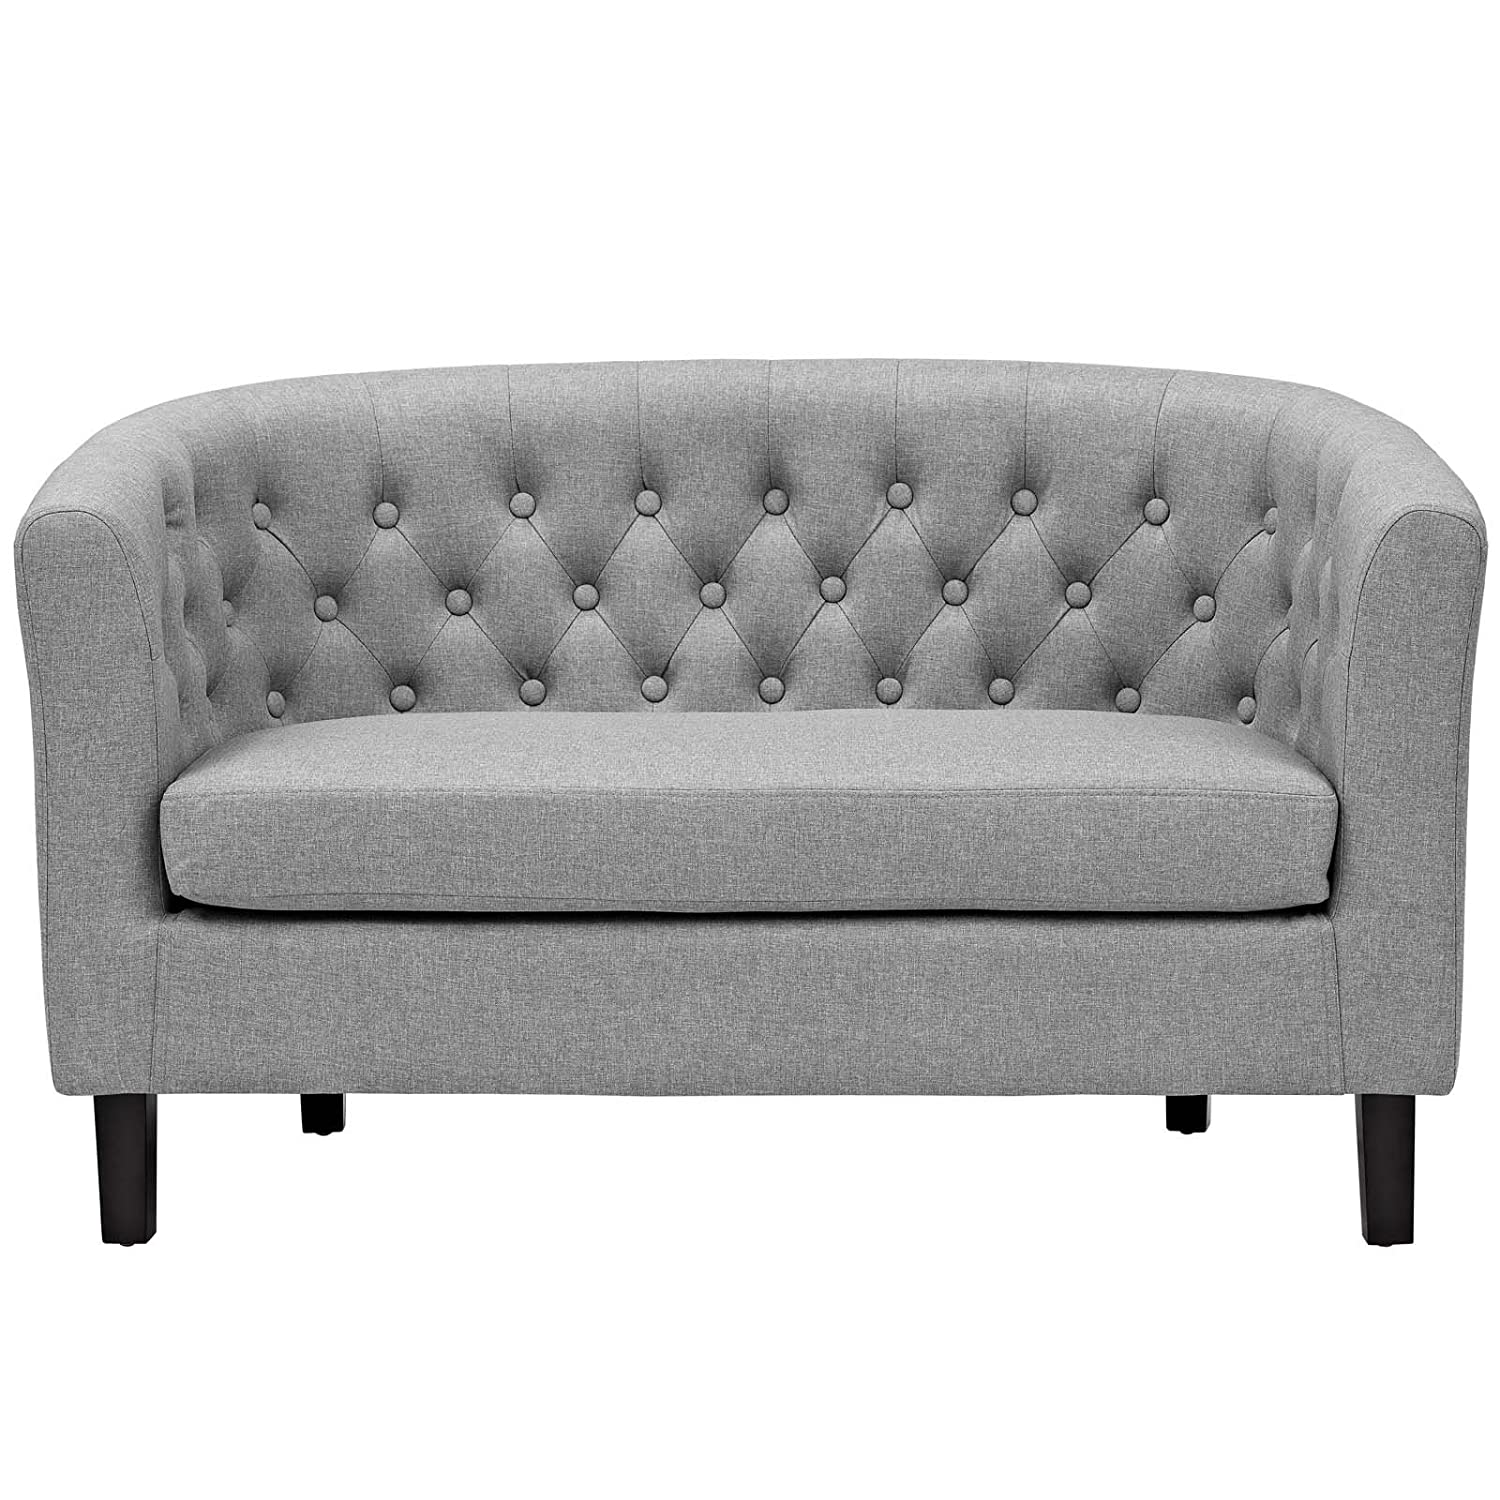 loveseat petite core leather p htm wcm product in